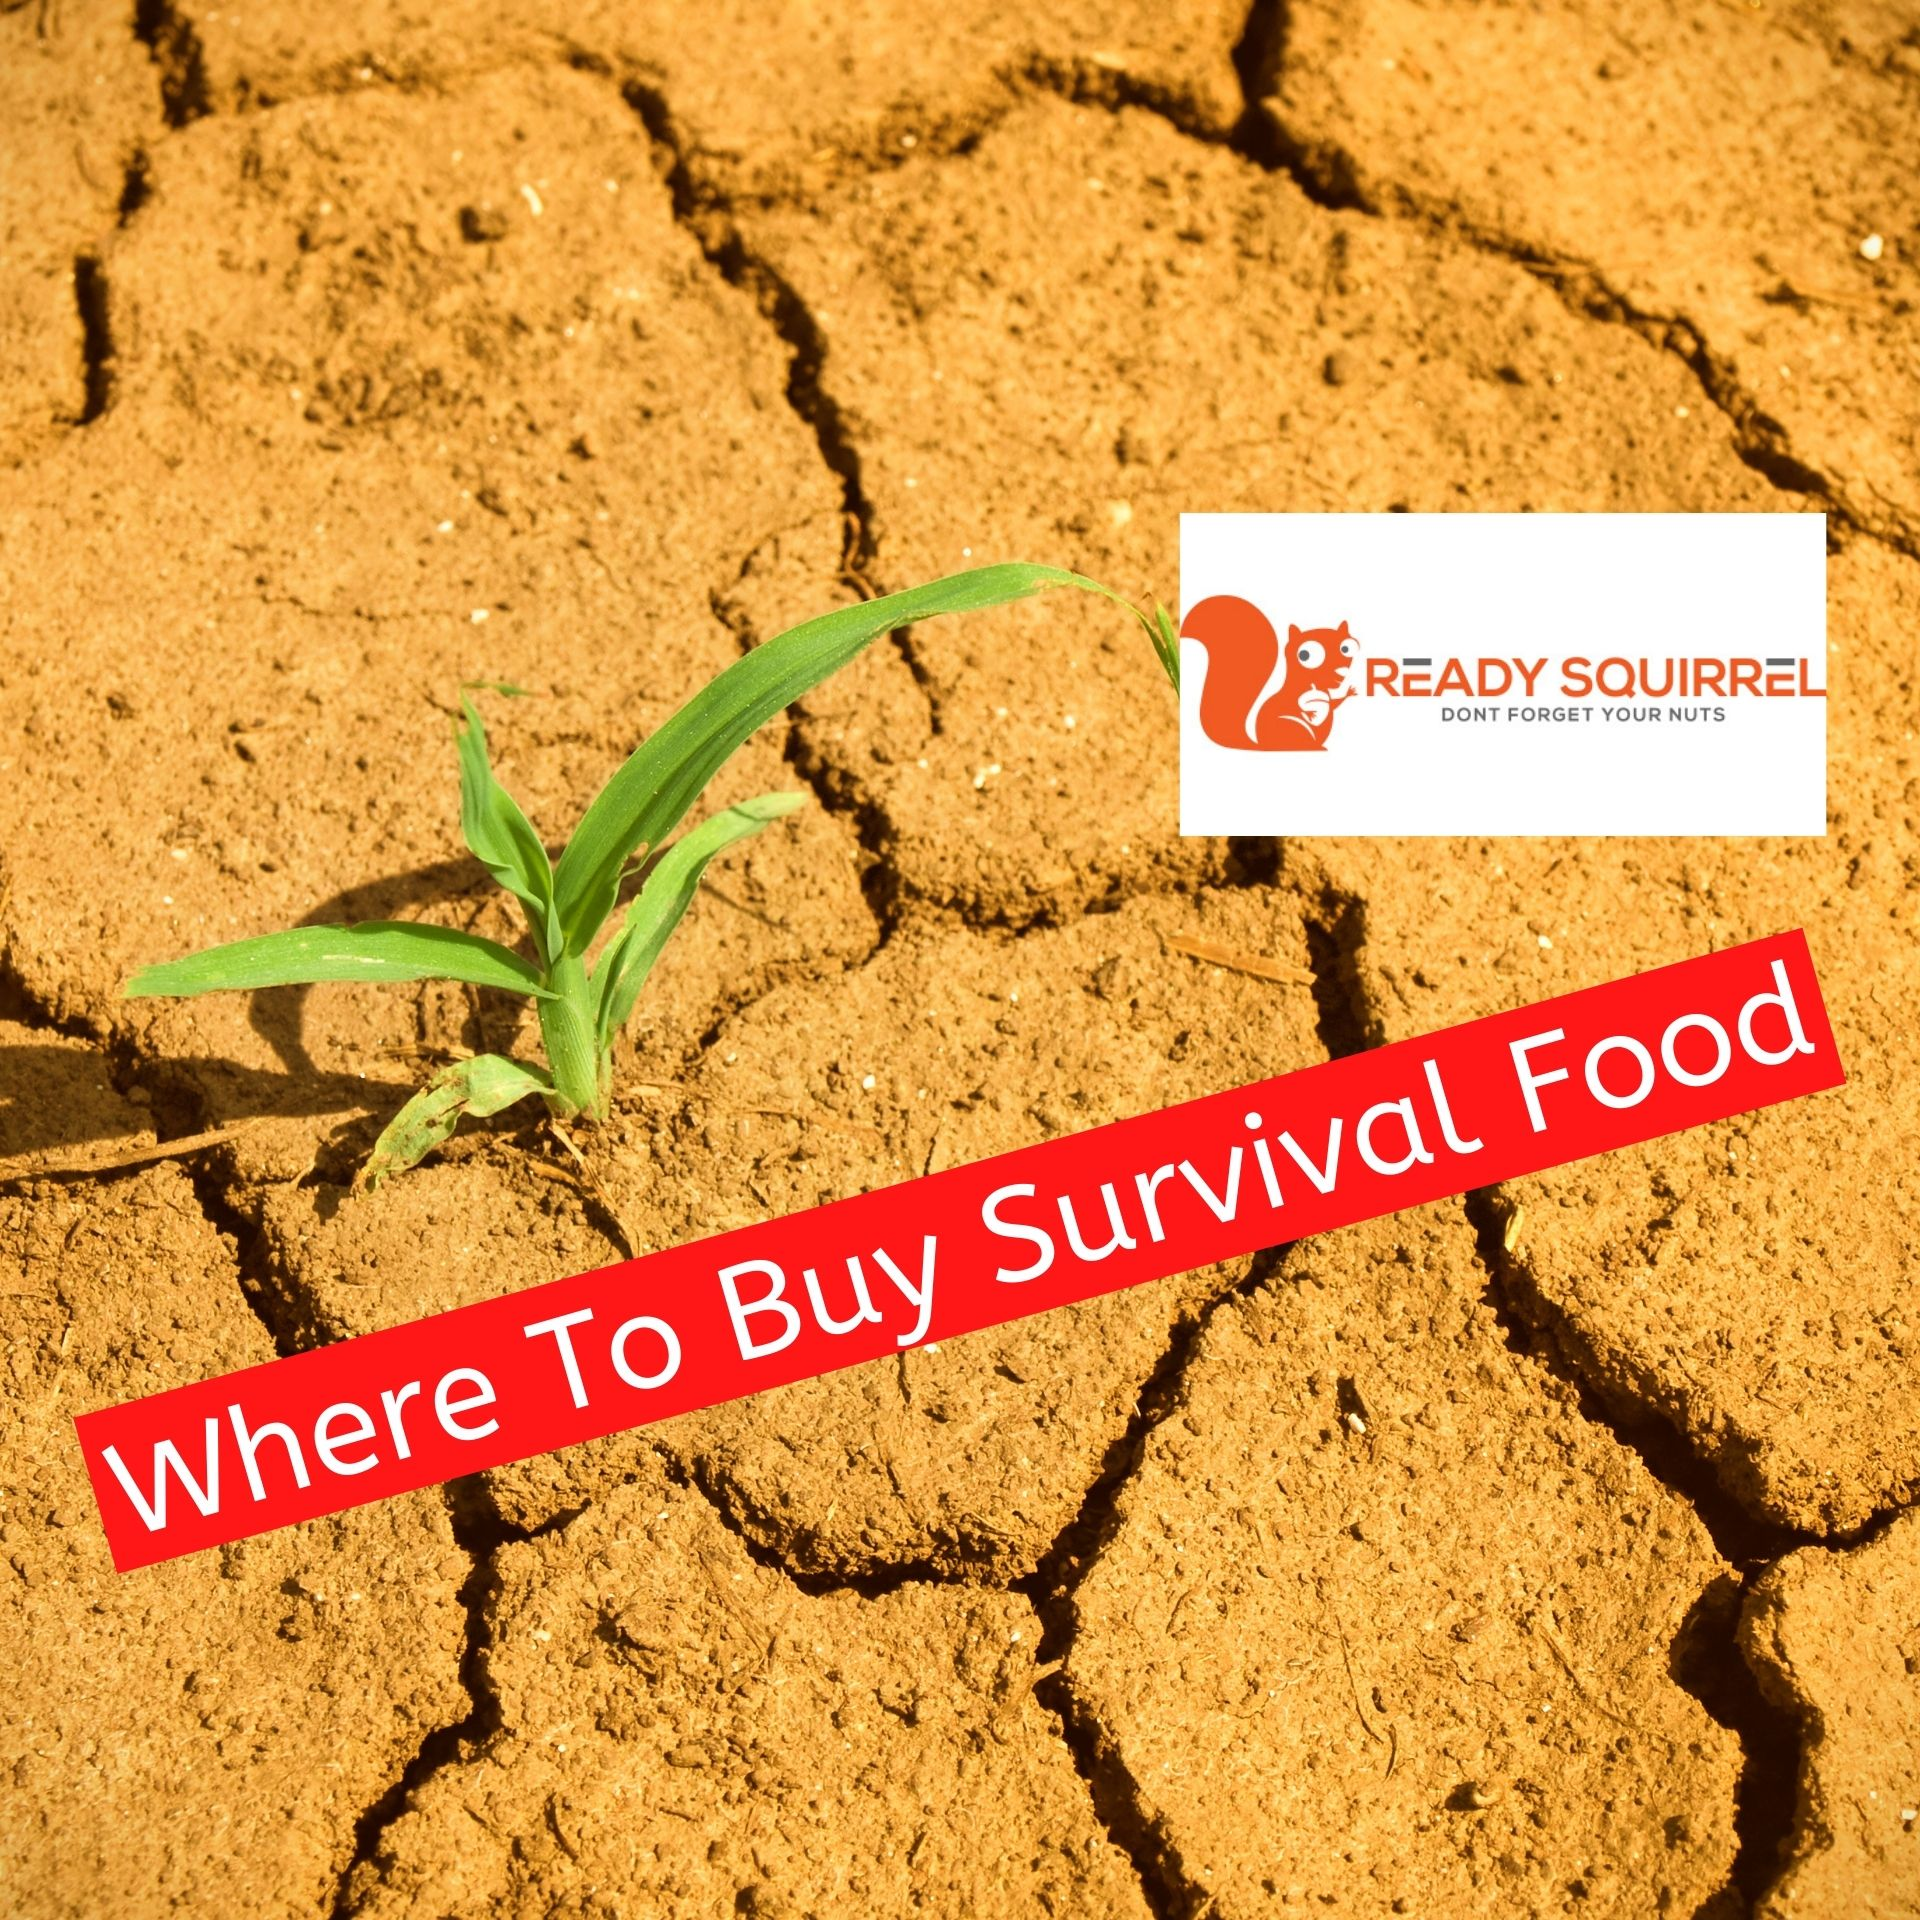 Where To Buy Survival Food